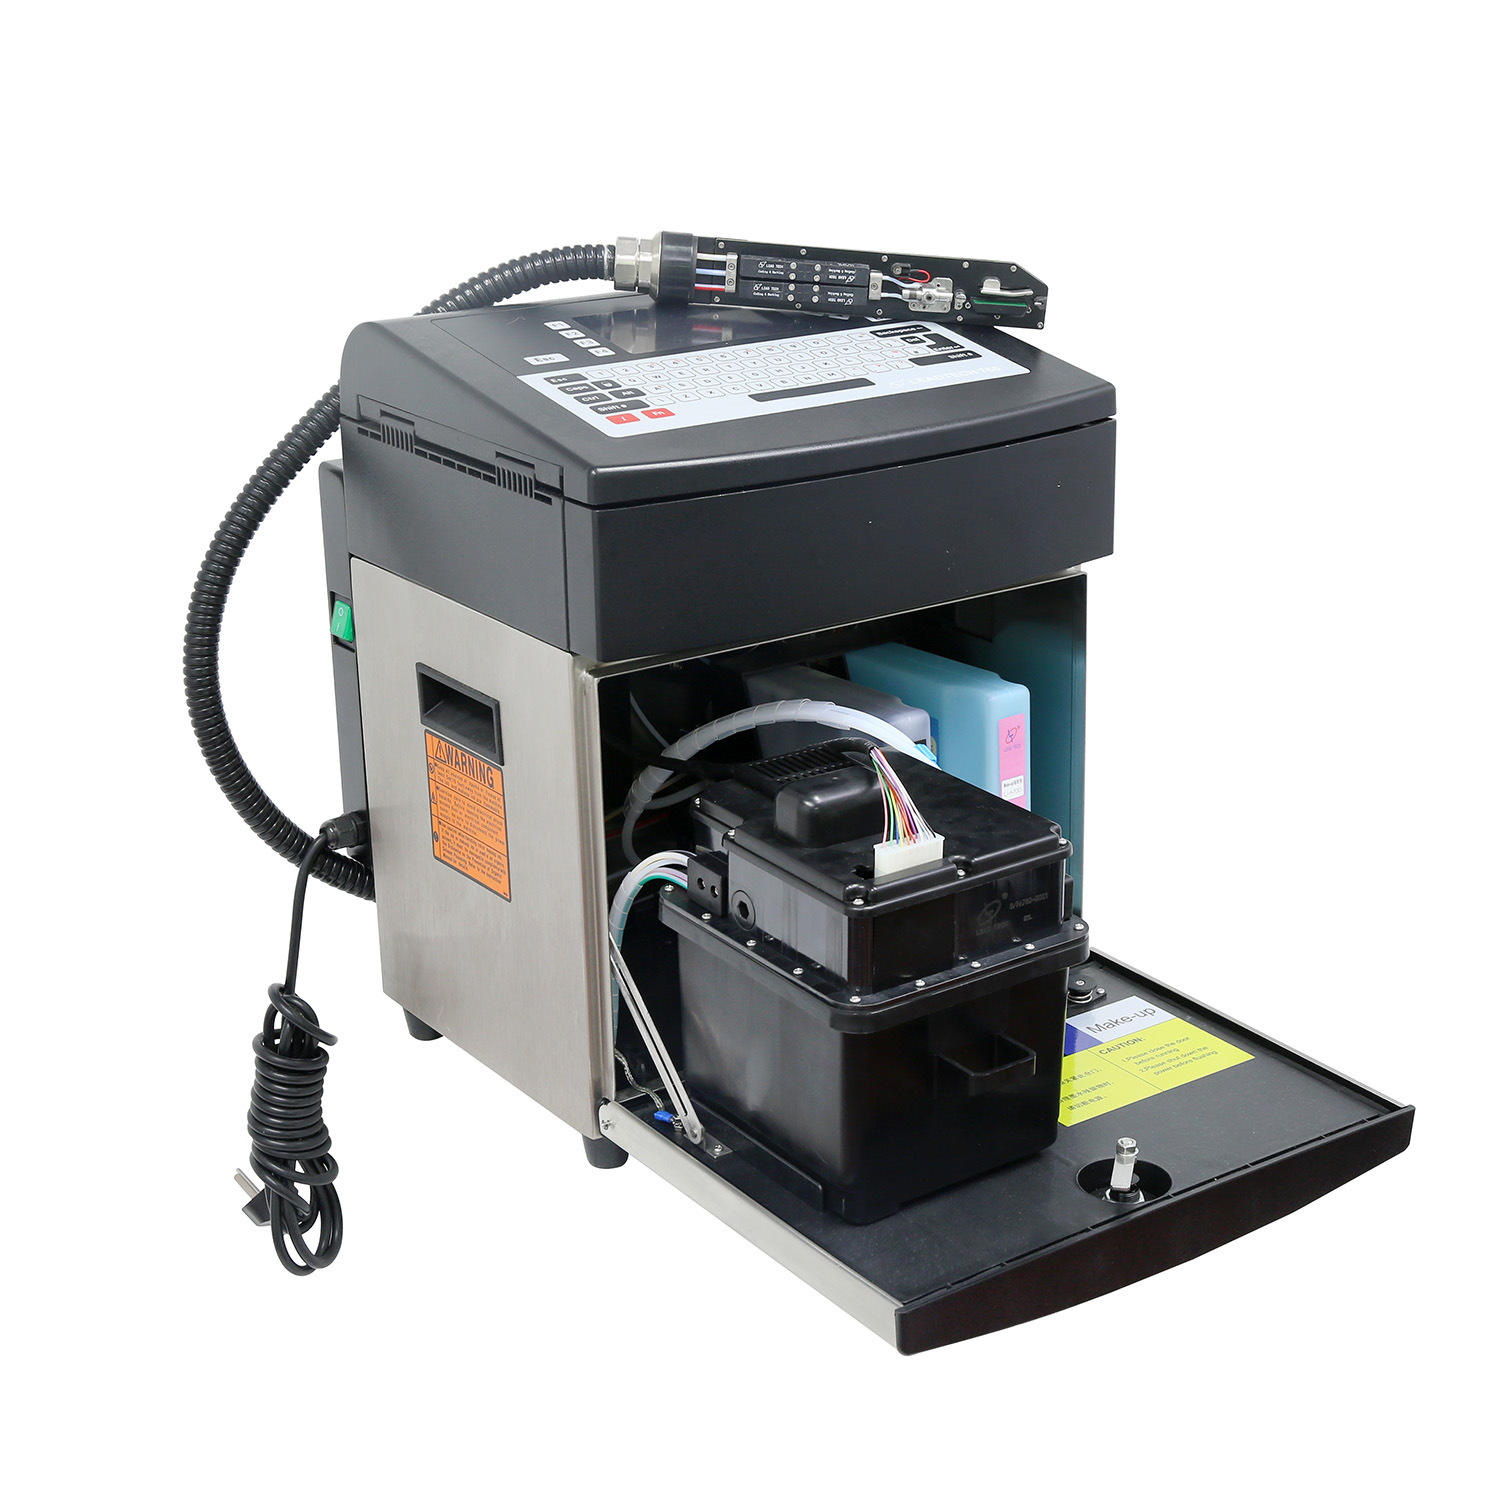 Leadtech Lt760 Industrial Color Inkjet Printer Machine